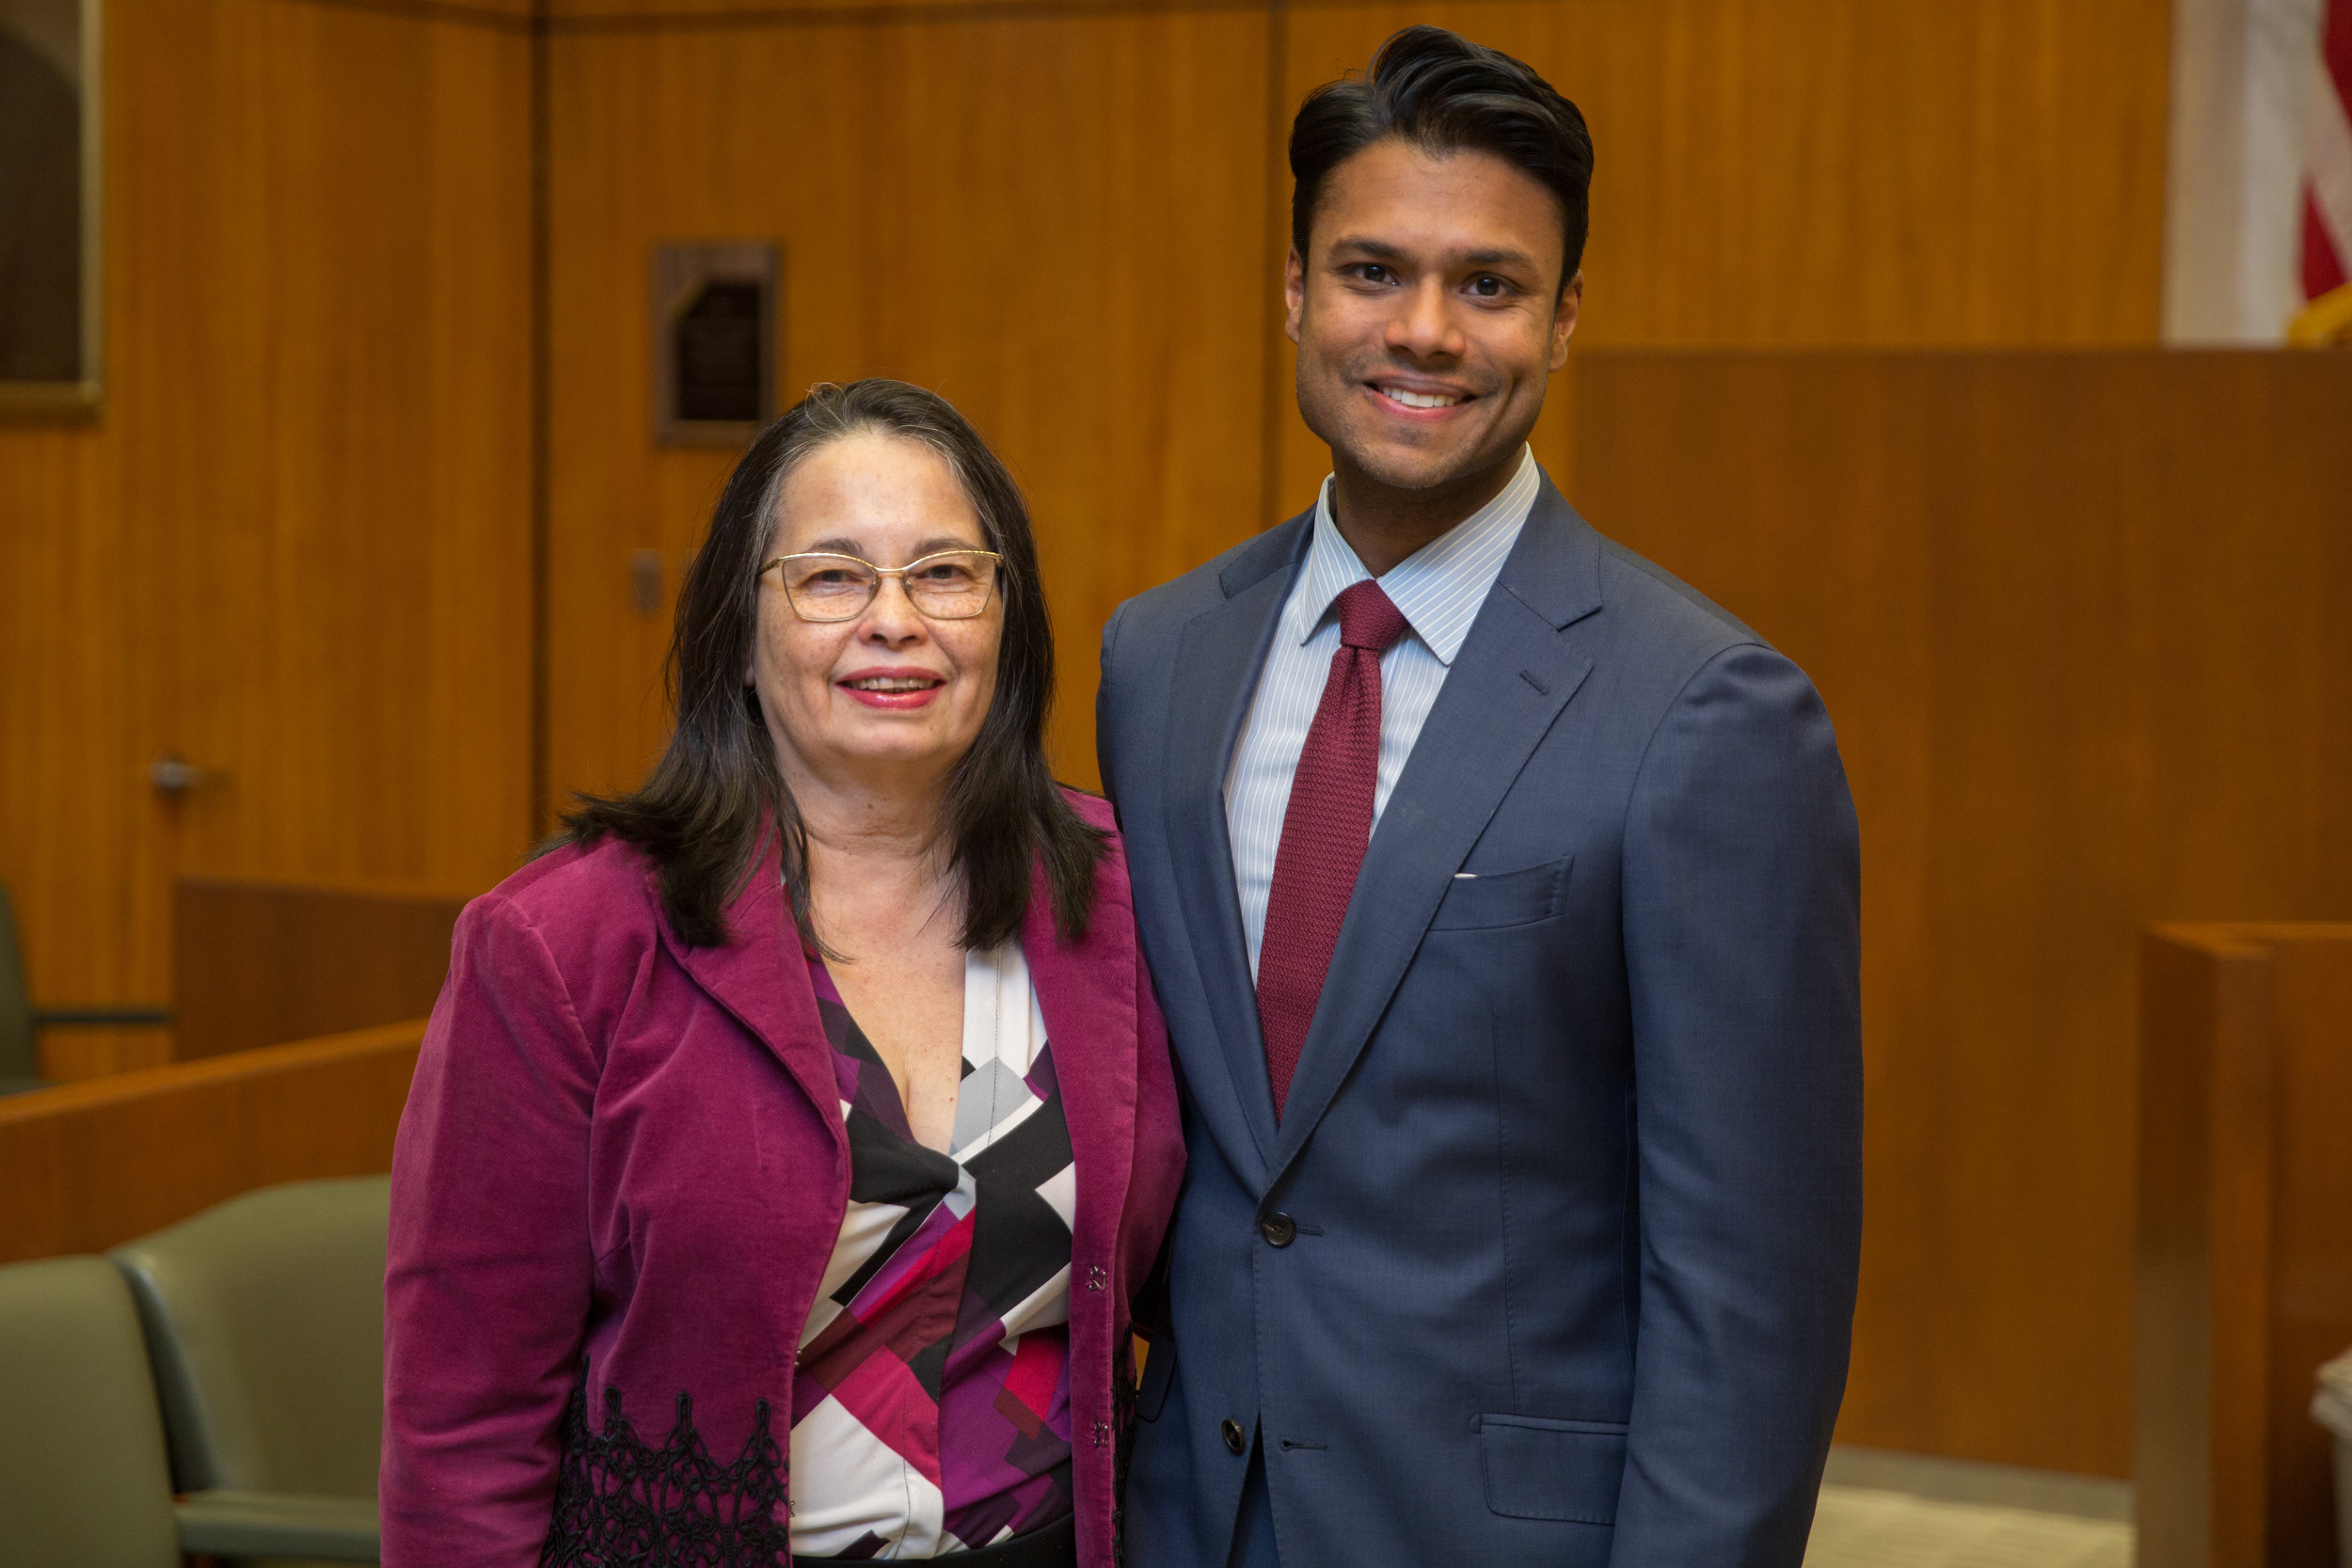 The South Asian Bar Association of New York held its installation at the EDNY courthouse. Pictured is Hon. Dora Irizarry, chief judge of the EDNY, and new president Ryan Budhu. Photos courtesy of Ryan Budhu.